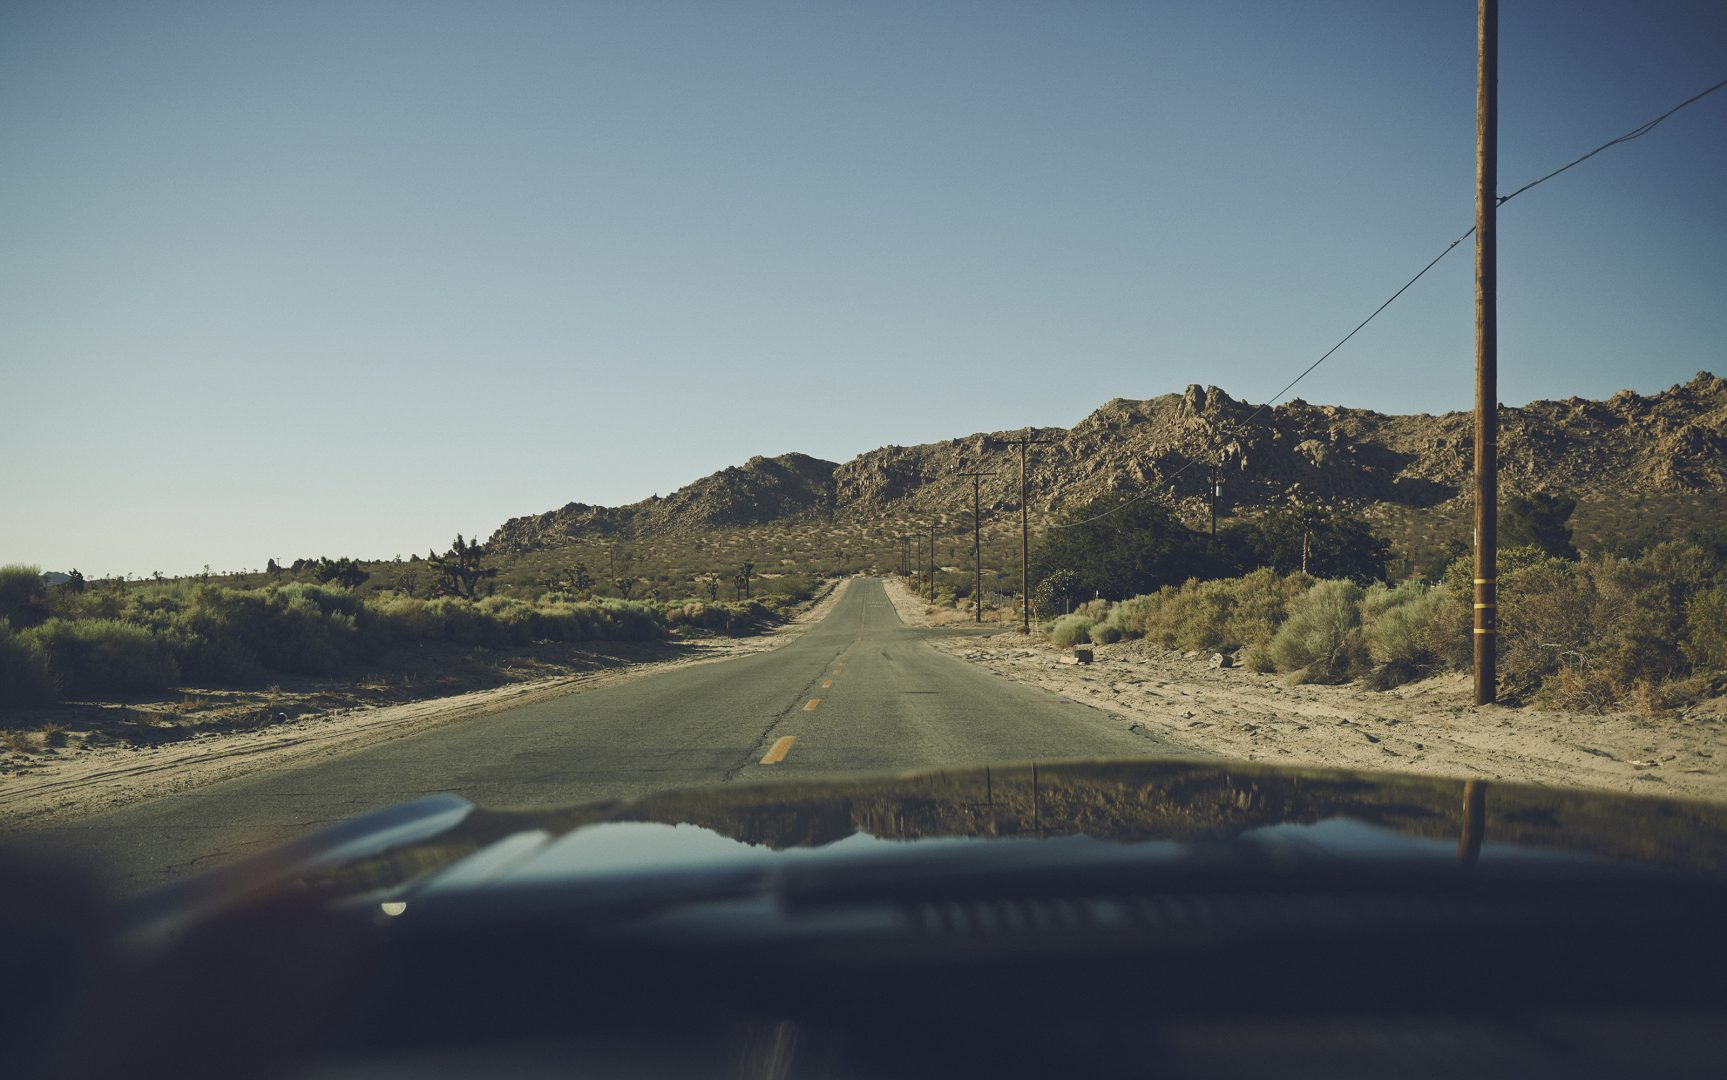 Driving in the desert with Ford Mustang by Stefan Rappo